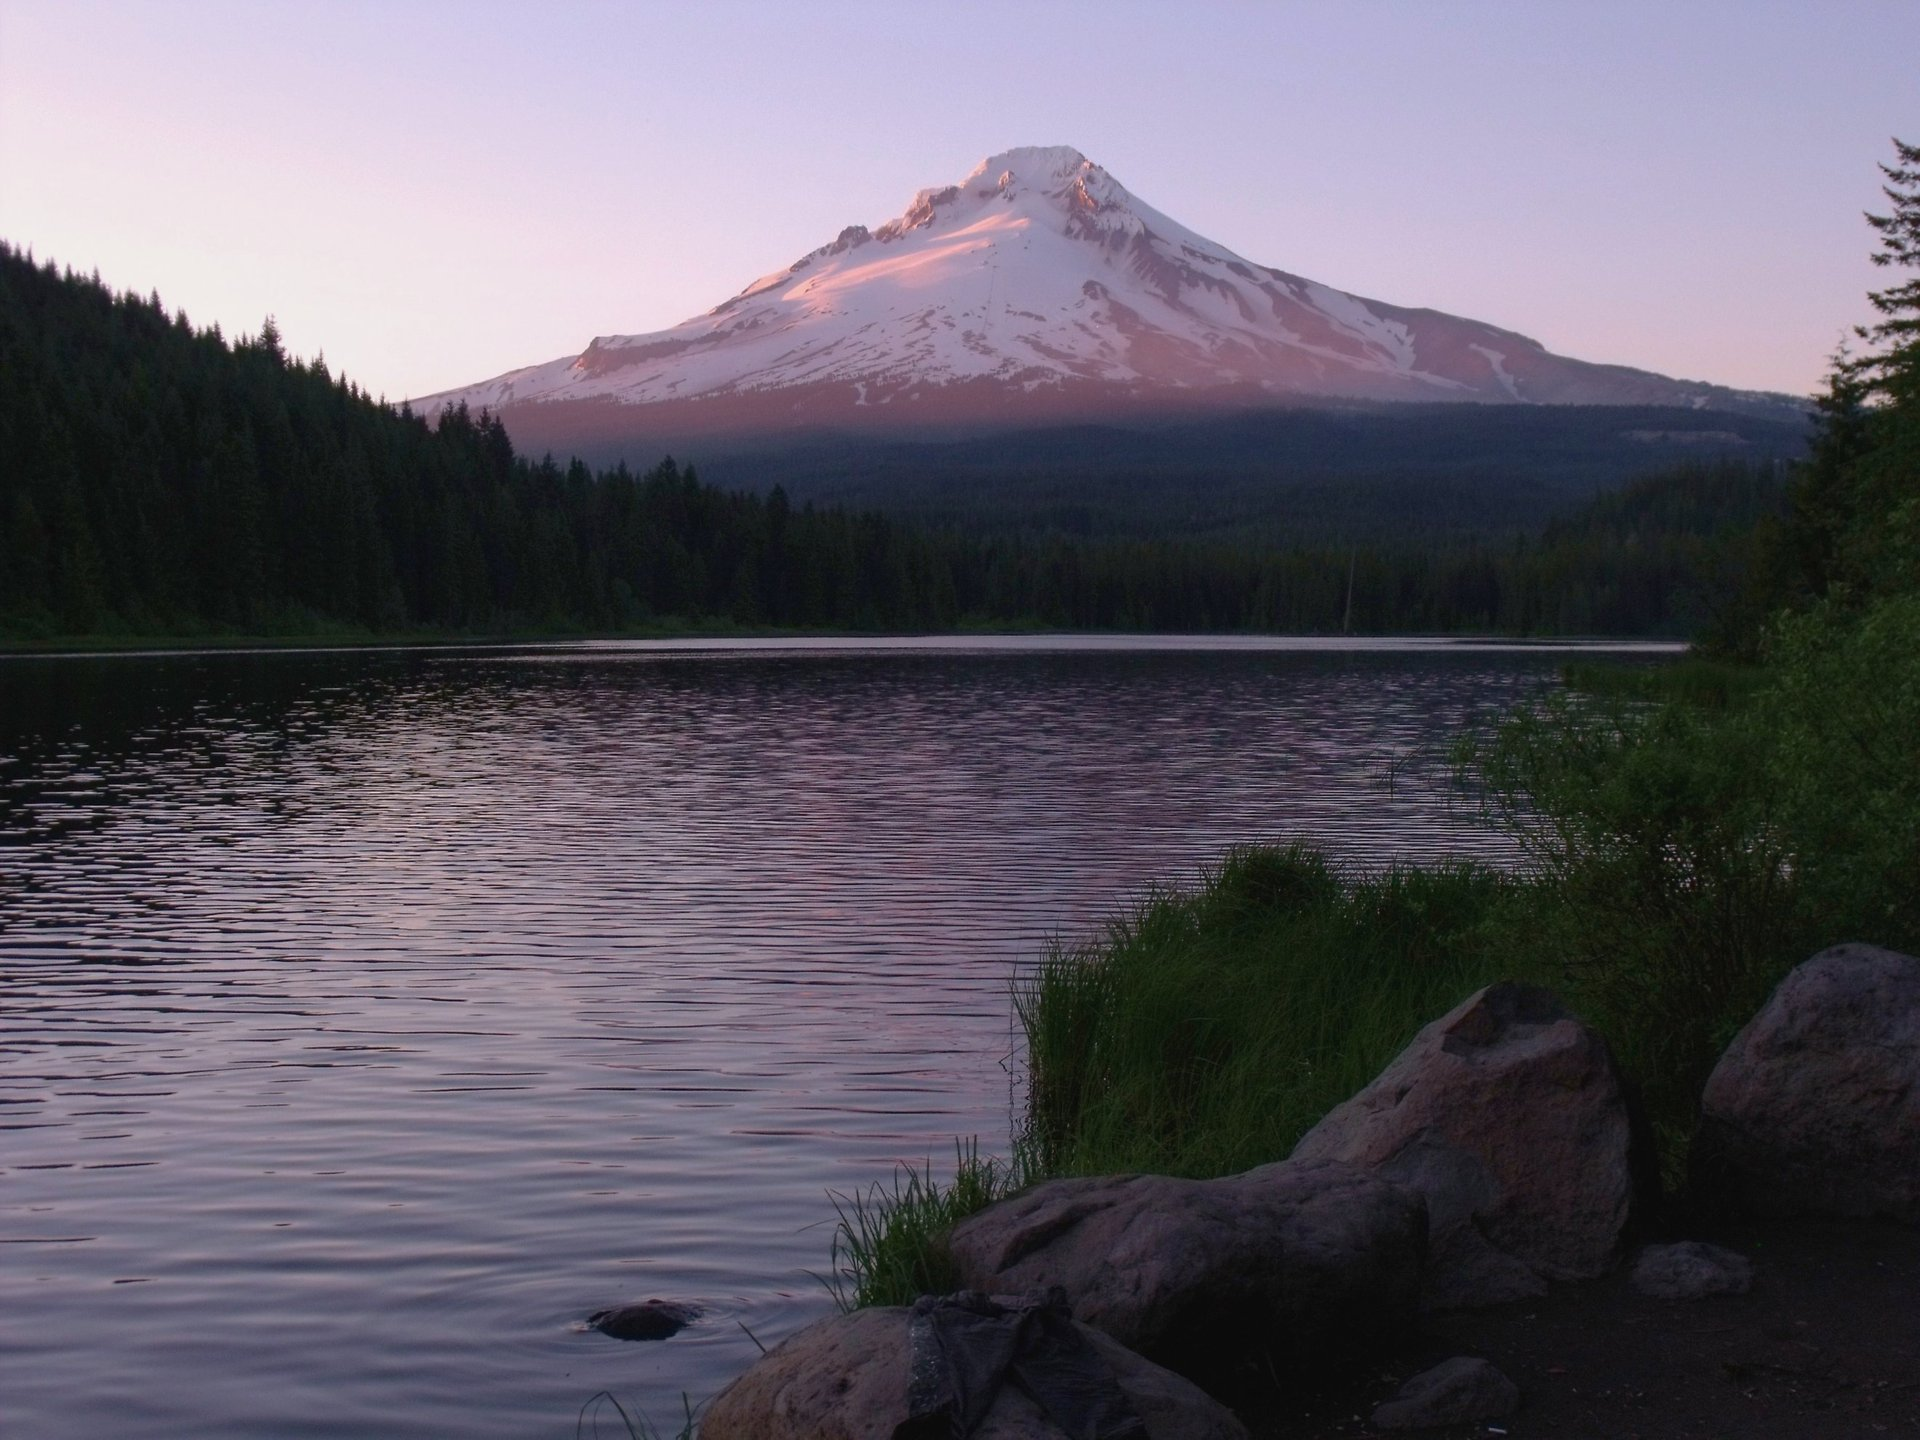 Mt. Hood at Trillium Lake 2020